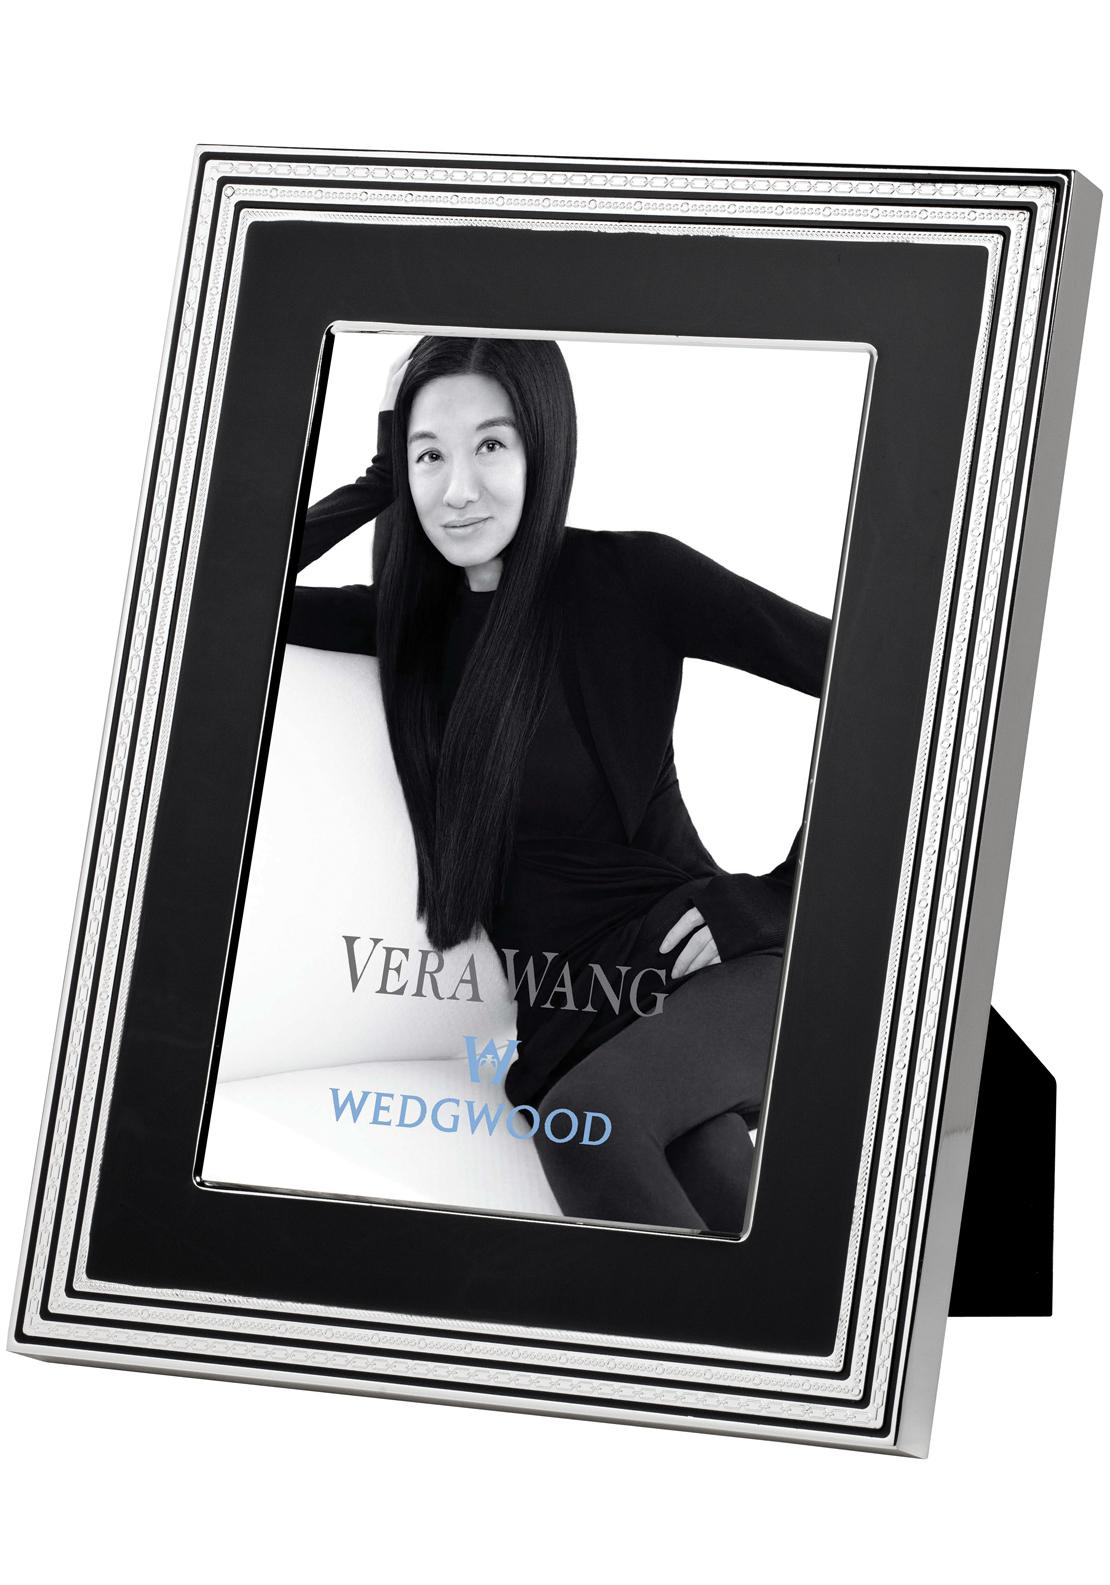 Vera Wang Wedgwood With Love Noir Photo Frame, 8 x 10 inches